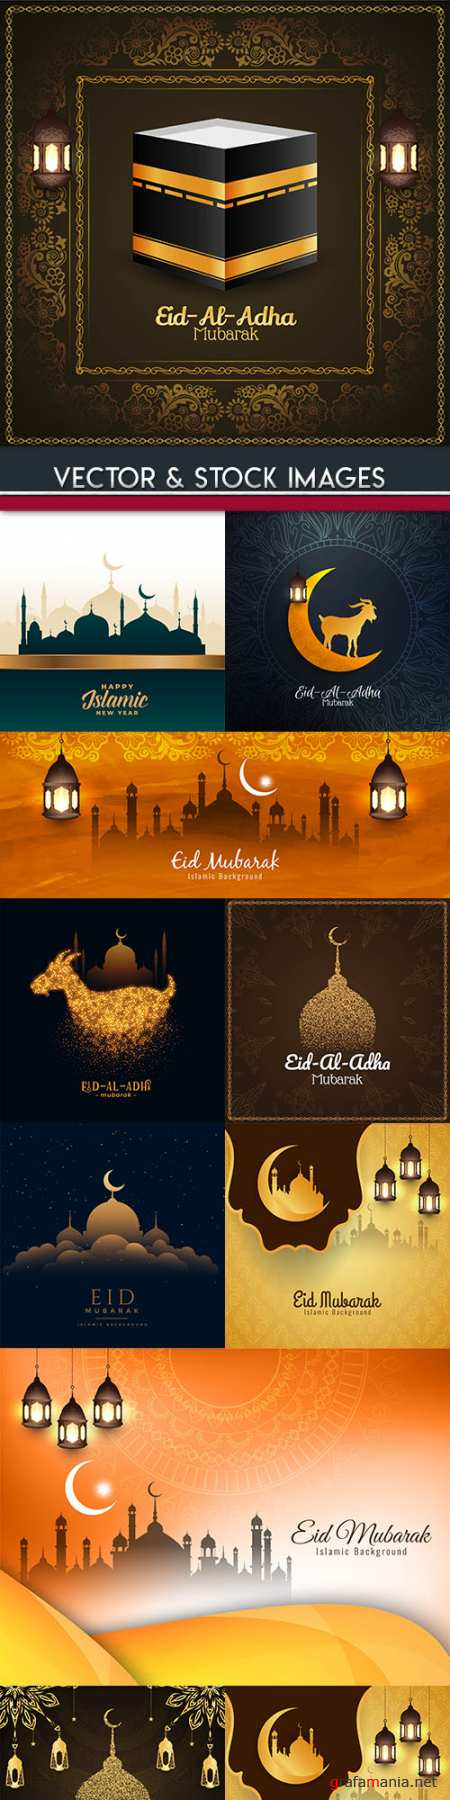 Ramadan Kareem Islamic culture collection illustrations 15